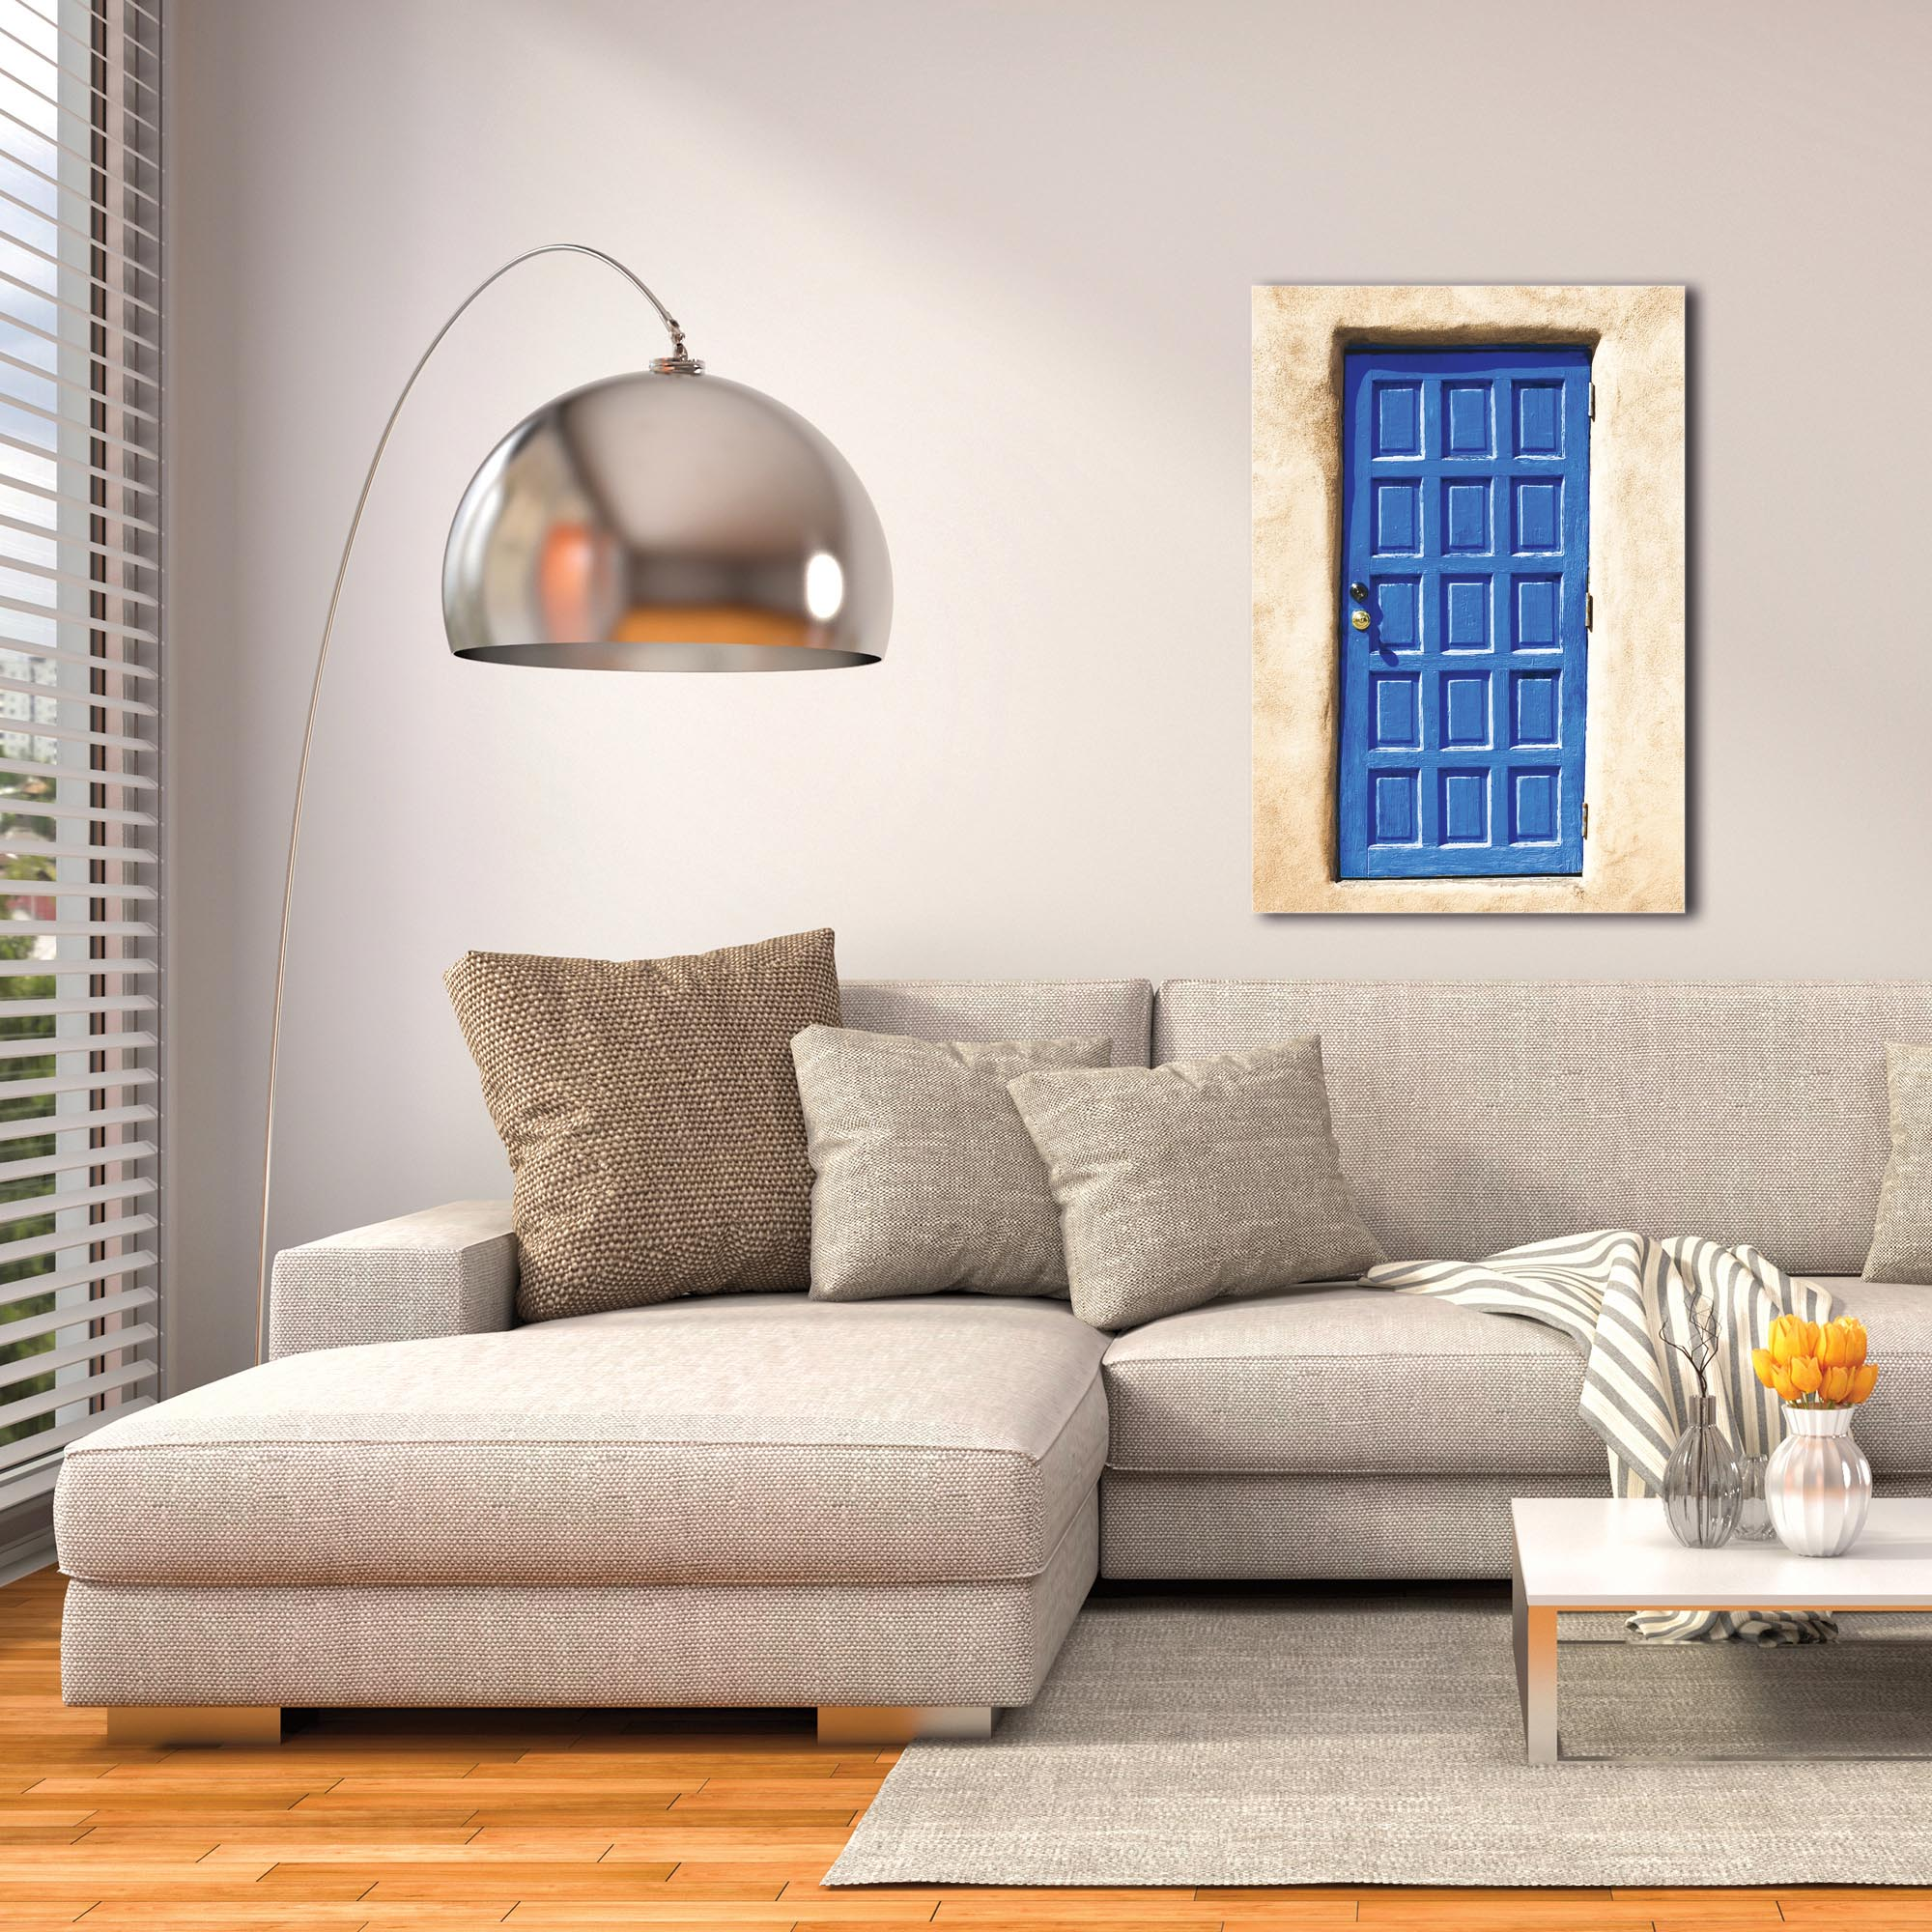 Eclectic Wall Art 'Blue Door' - Architecture Decor on Metal or Plexiglass - Image 3